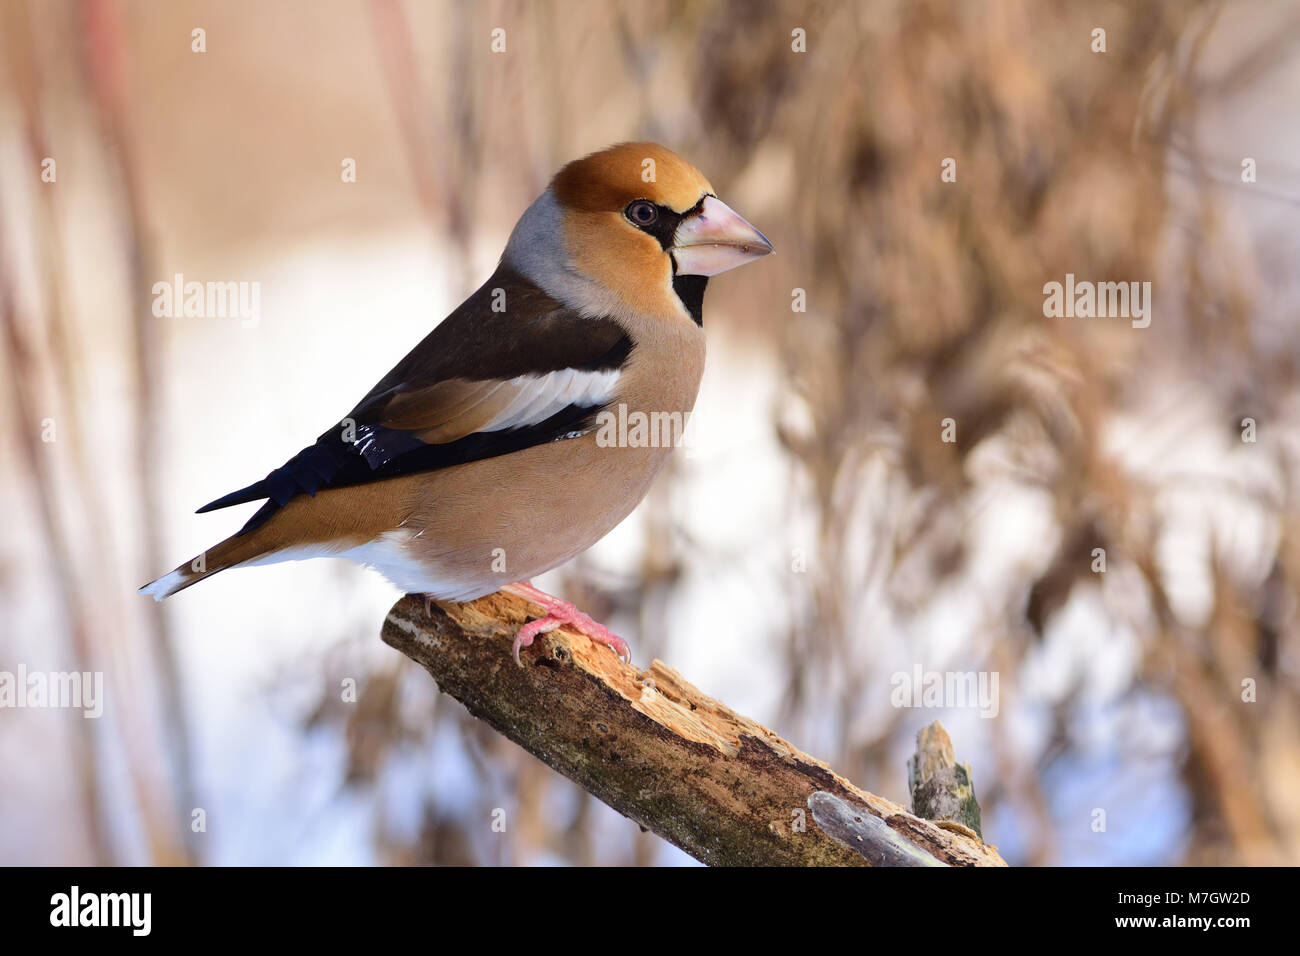 Large beak hawfinch (Coccothraustes coccothraustes) sits on a broken branch among dry grass. Stock Photo